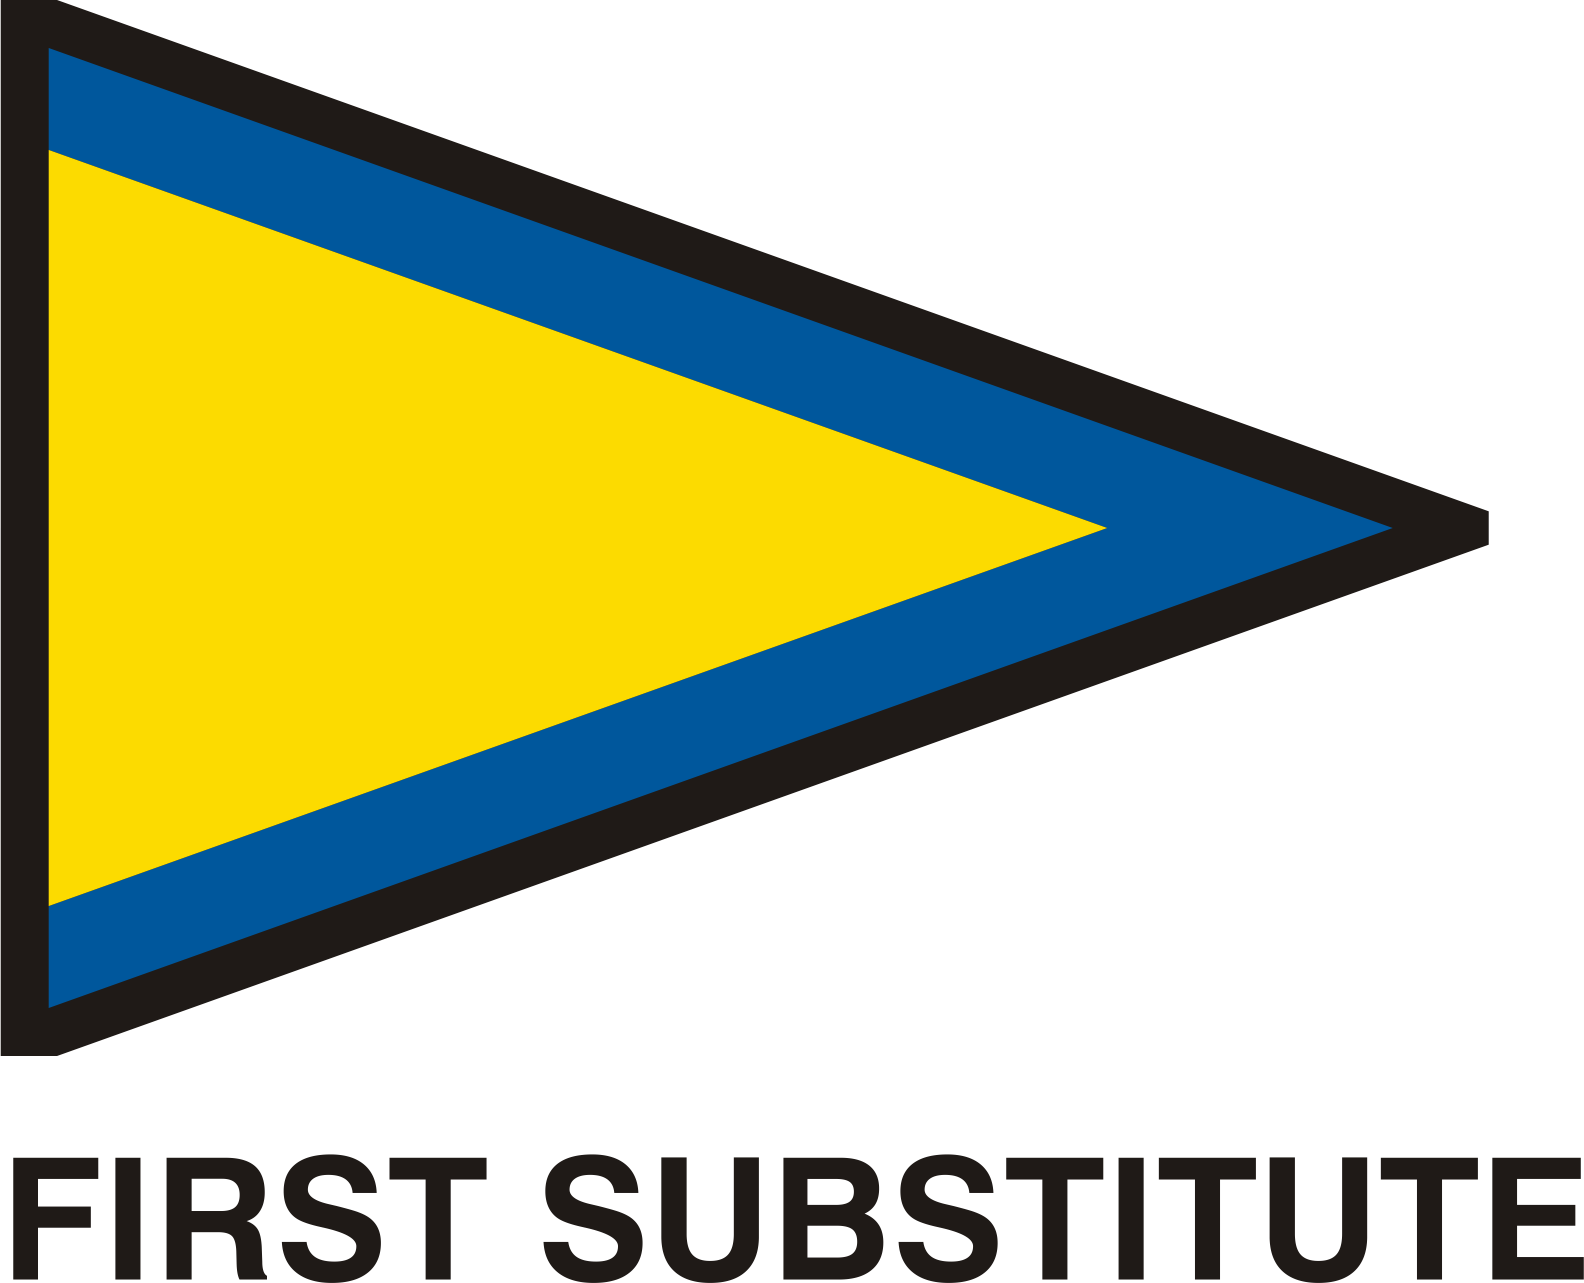 Gran Pavese flags, First Substitute flag by Vanja